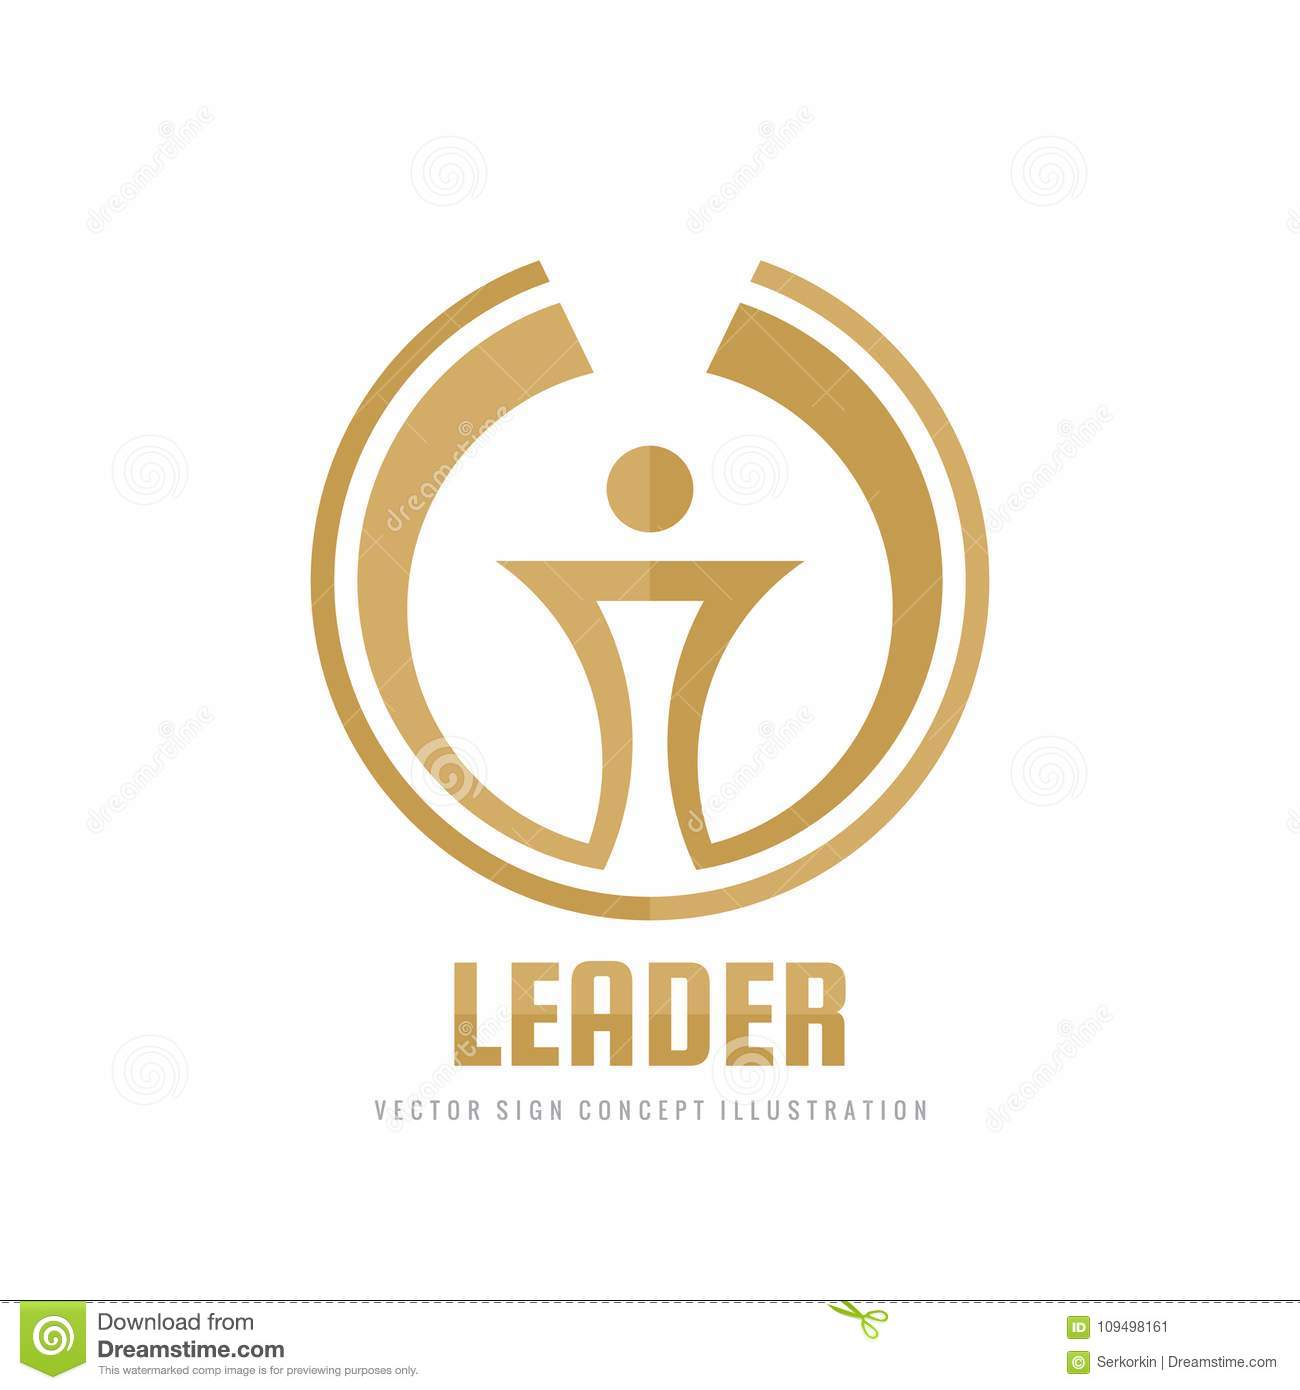 Leader - vector business logo template concept illustration. Abstract torch creative sign. Award winner cup symbol.